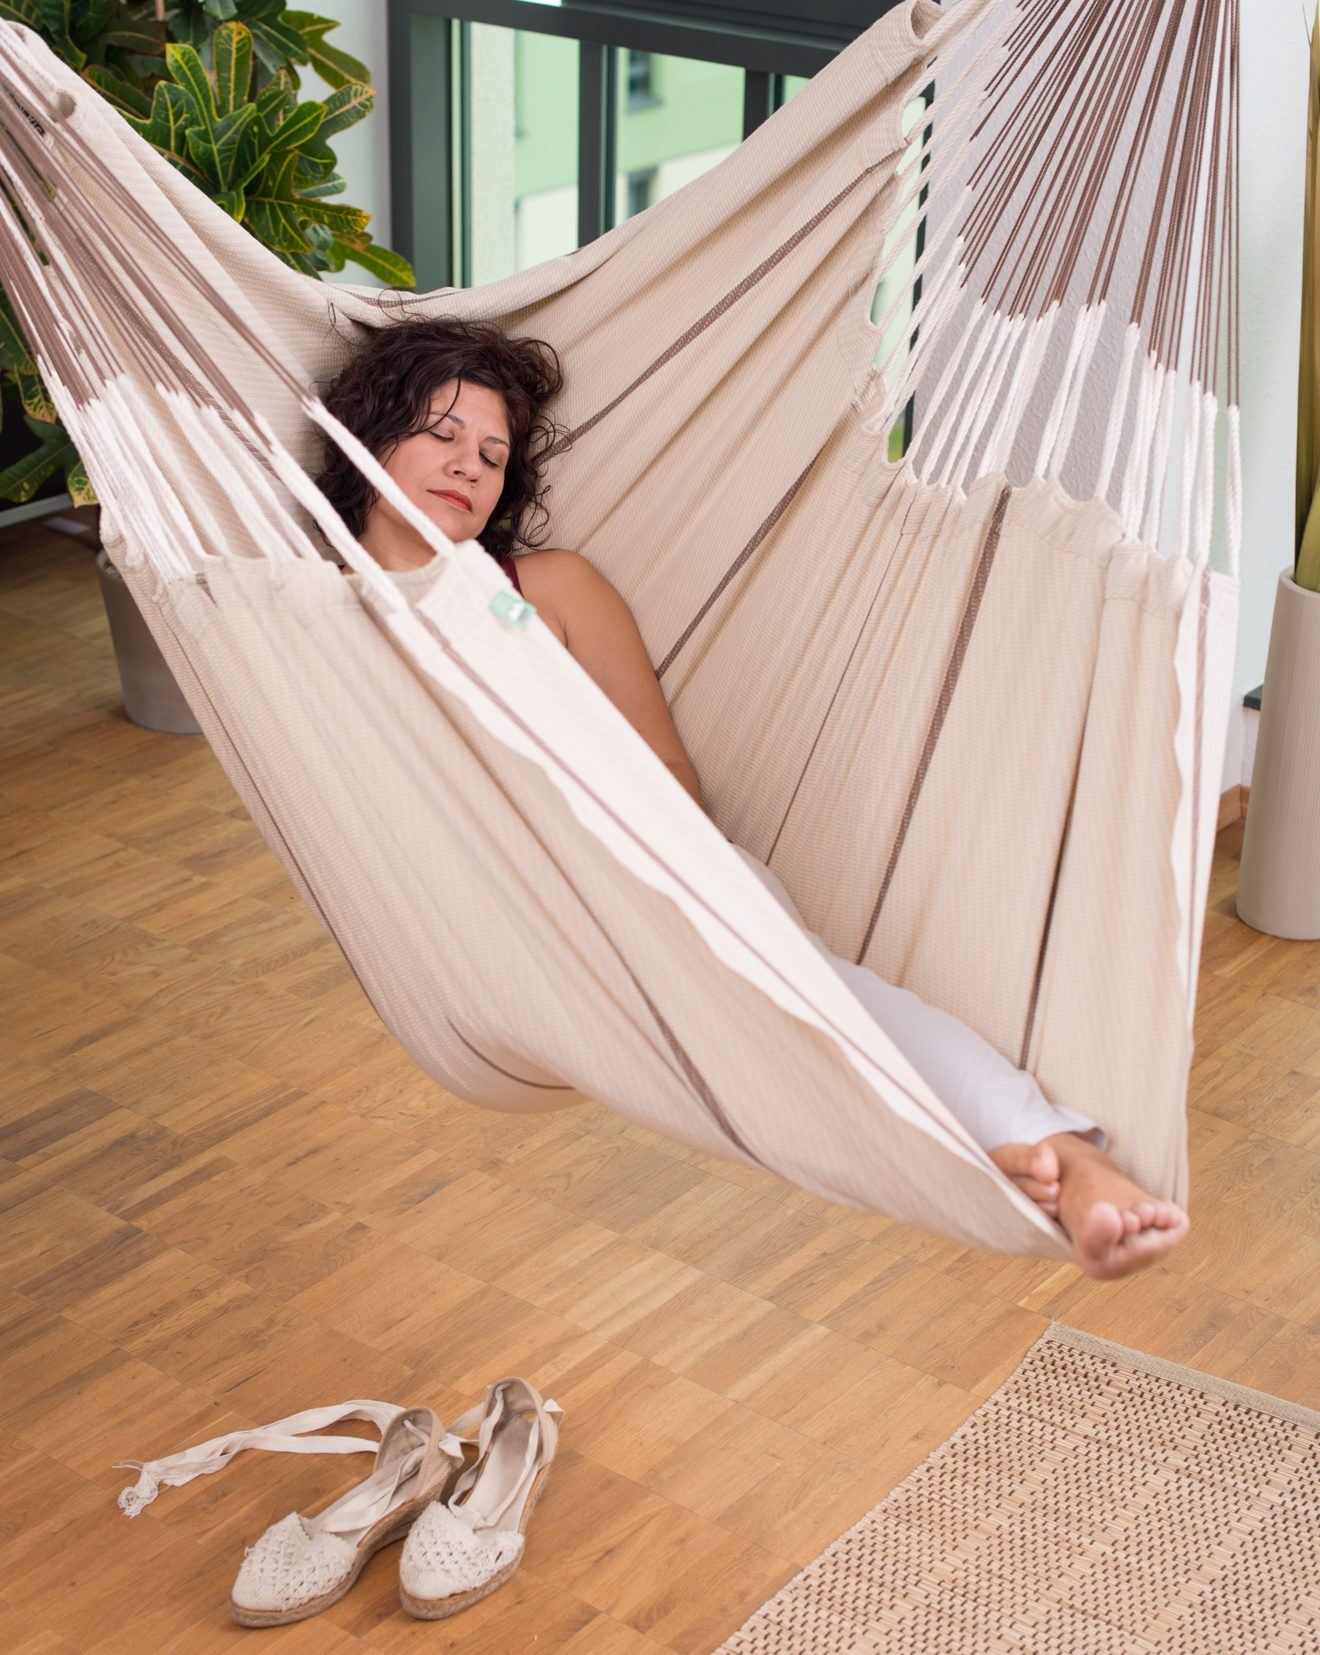 Hammock Chair for strong core and the sence of balance